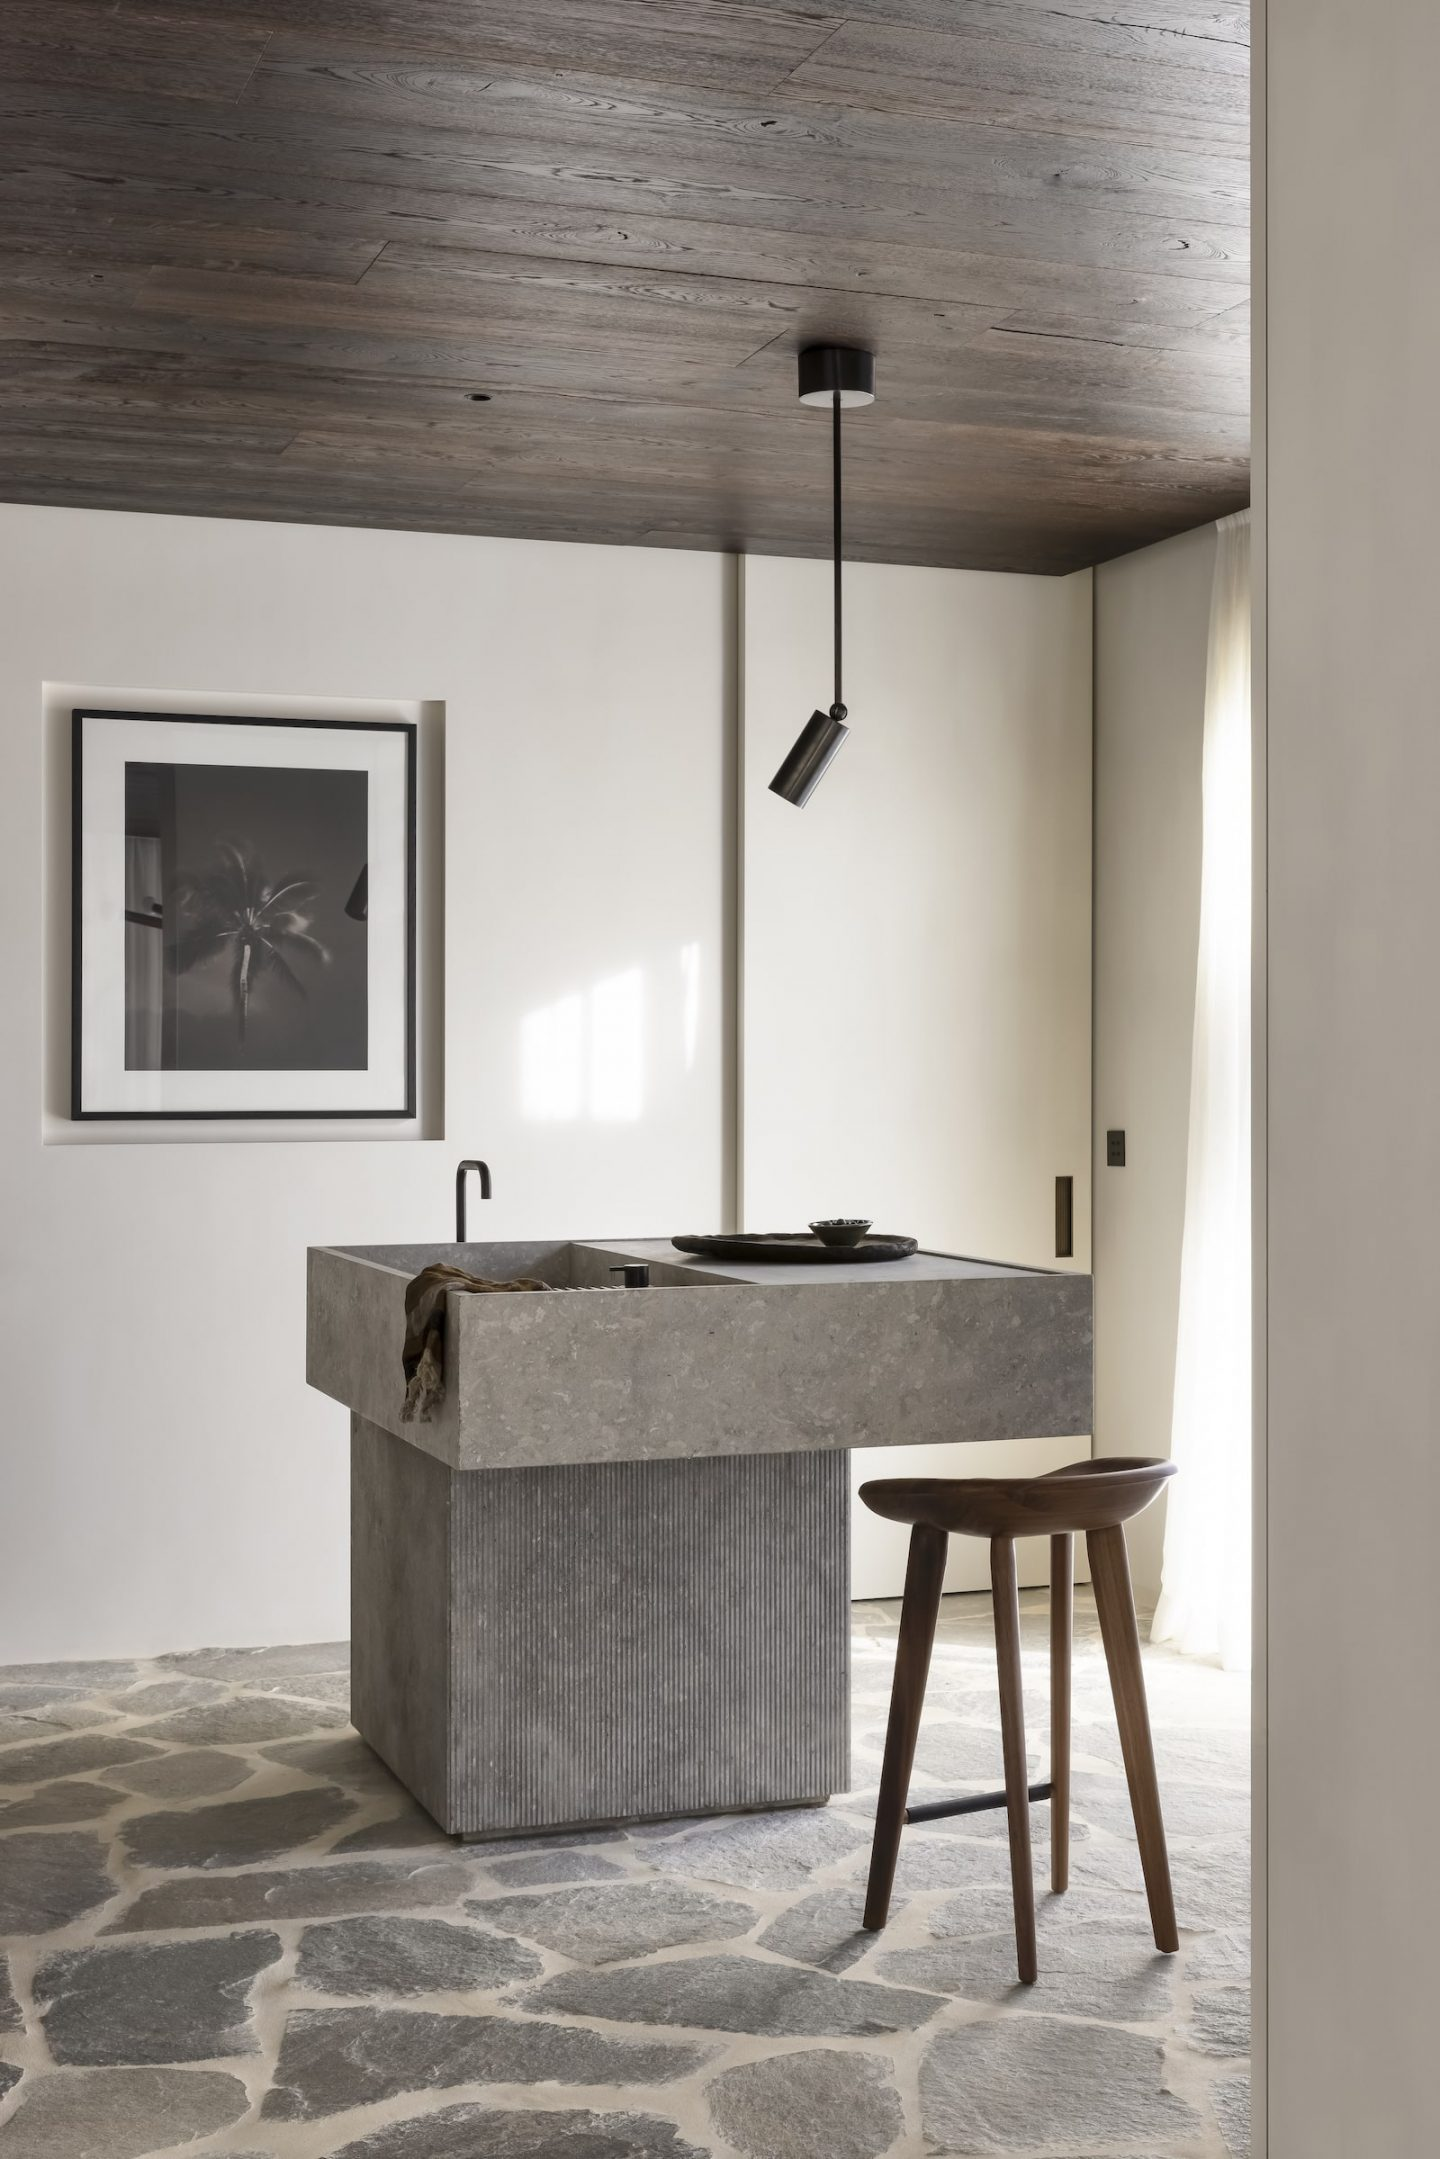 IGNANT-Architecture-Andy-Kerstens-MUD-Residence-01